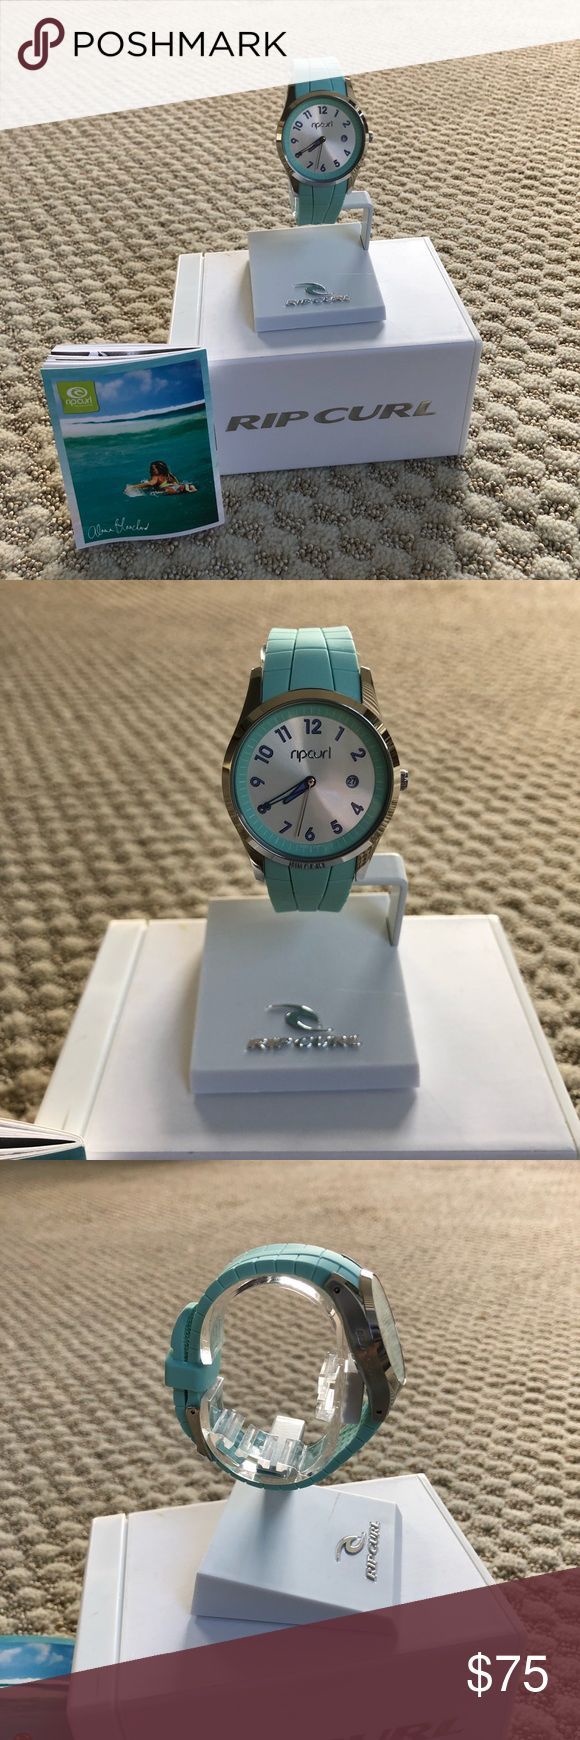 NWT Rip curl Ladies Watch NWT Excellent Condition, blue/green band, never worn Rip Curl Accessories Watches